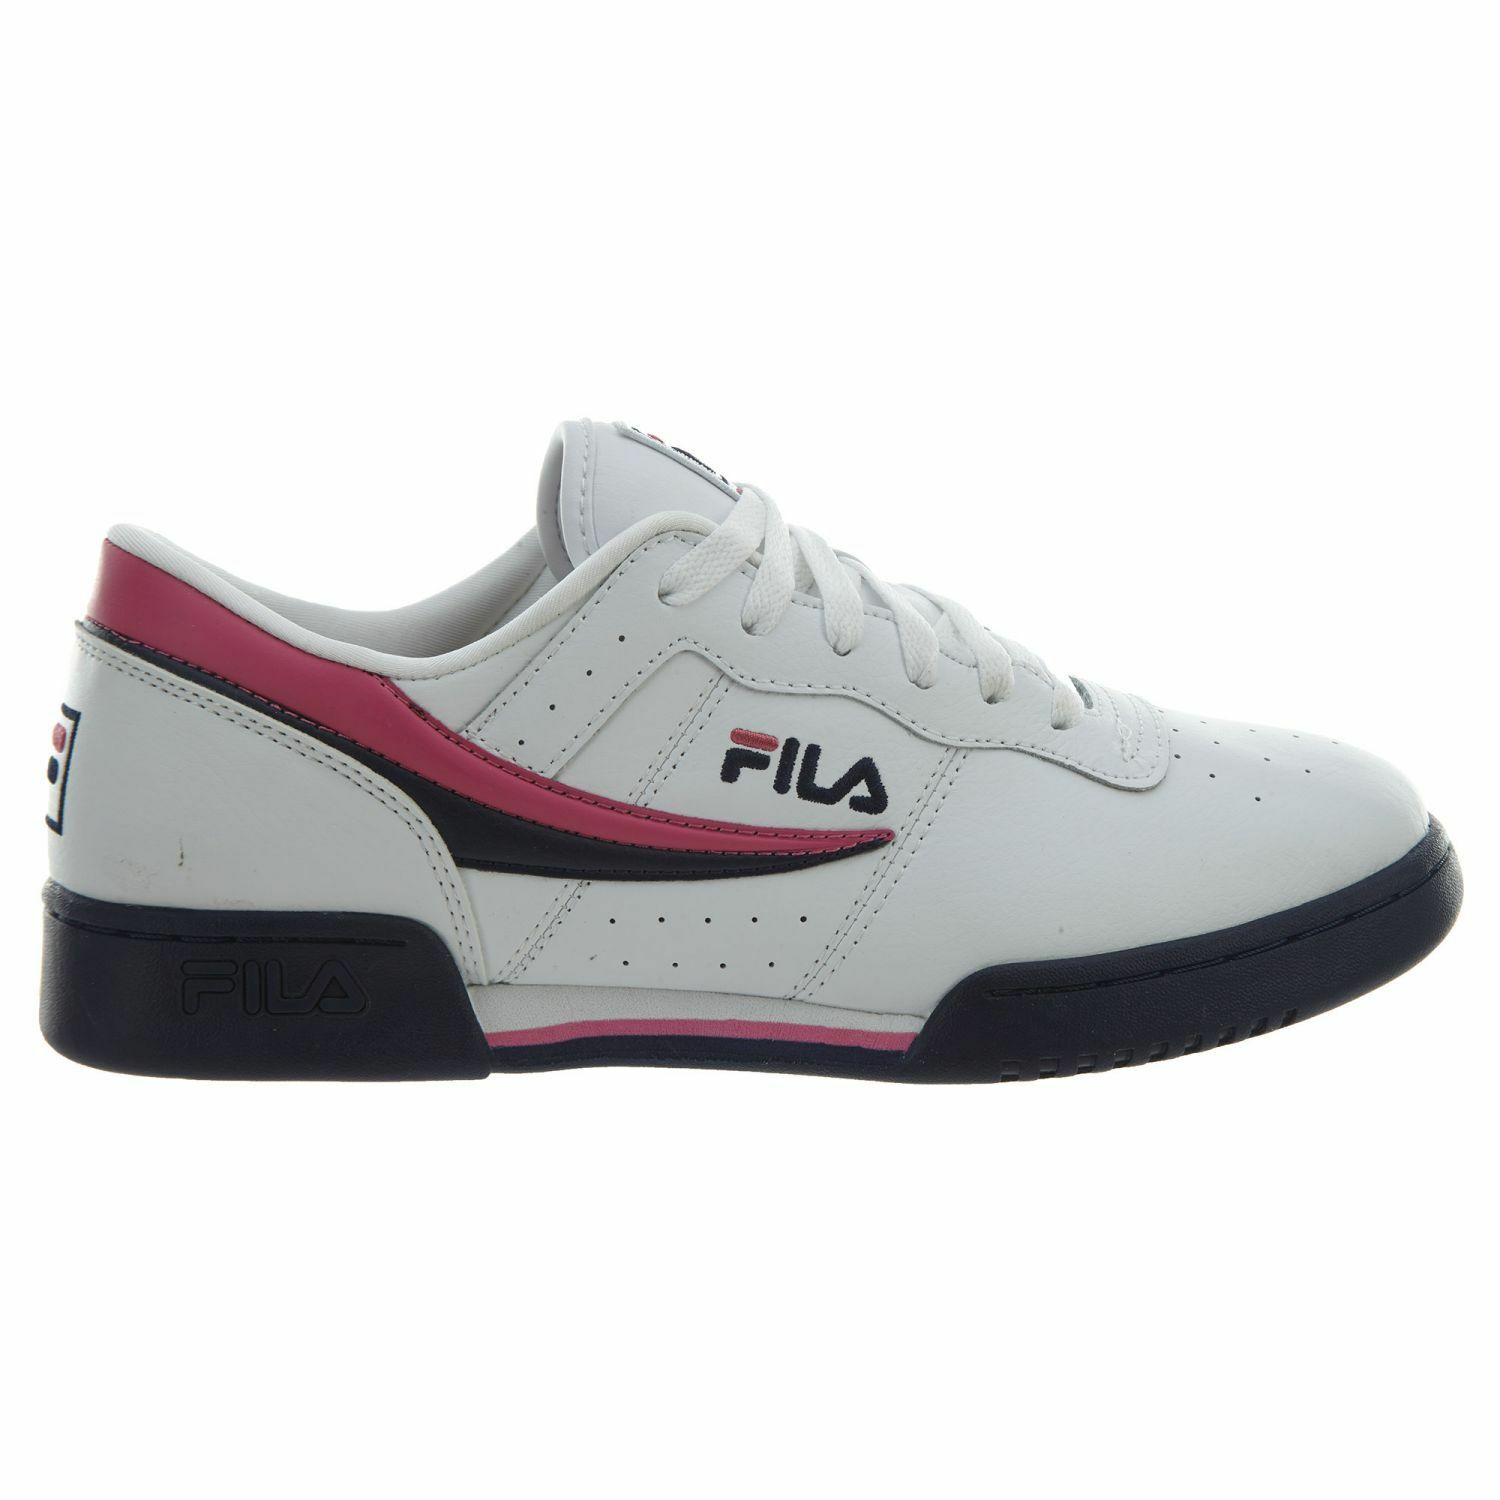 Fila Original Fitness Uomo 1FM00081-148 bianca Navy Pink Athletic Shoes Size 10